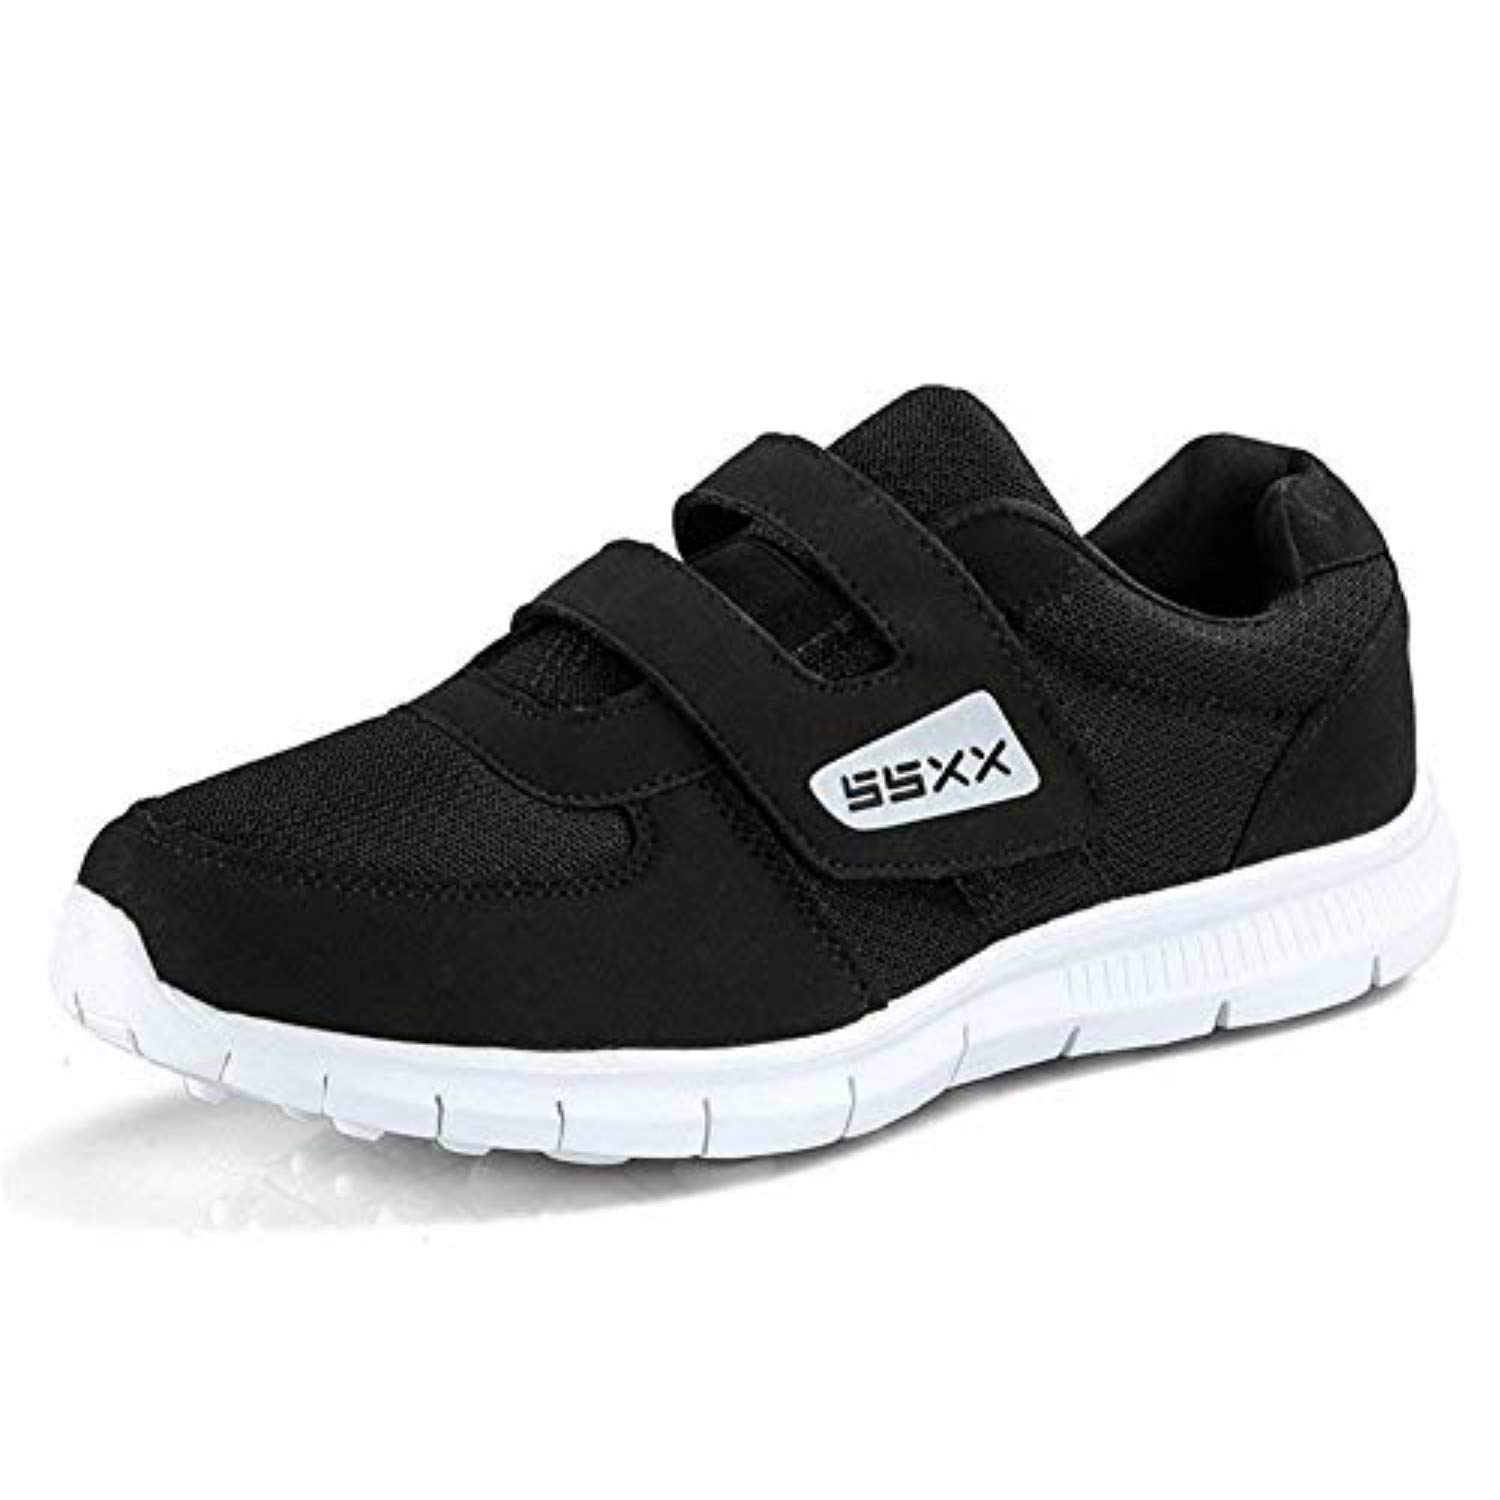 7c28a186b Amazon.com | Fires Men's Casual Sneakers Lightweight Athletic Elderly Slip  On Walking Shoes | Fashion Sneakers